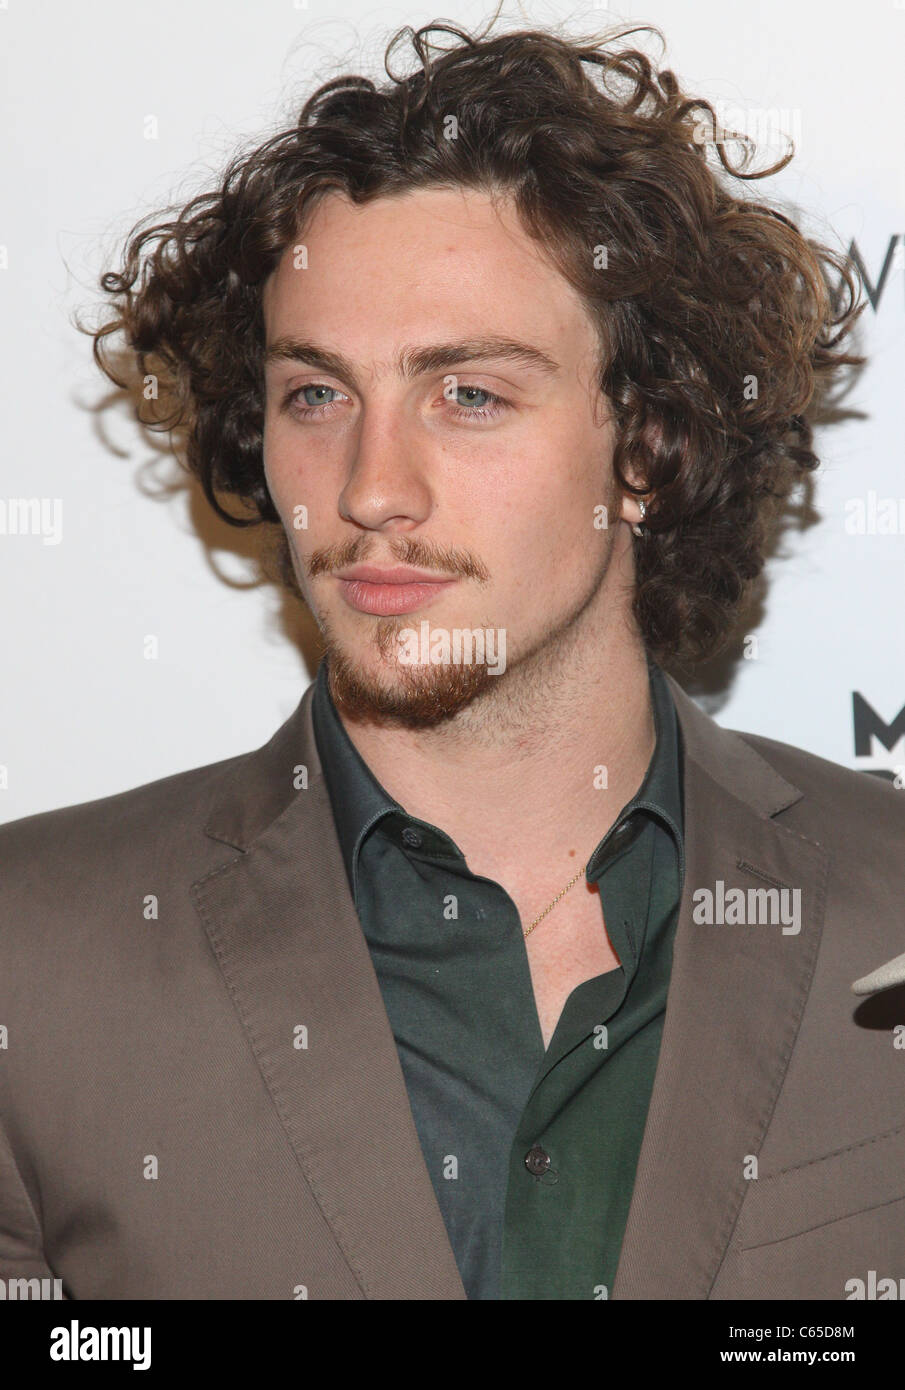 Aaron Johnson at arrivals for NOWHERE BOY Premiere, BMCC Tribeca Performing Arts Center, New York, NY September - Stock Image